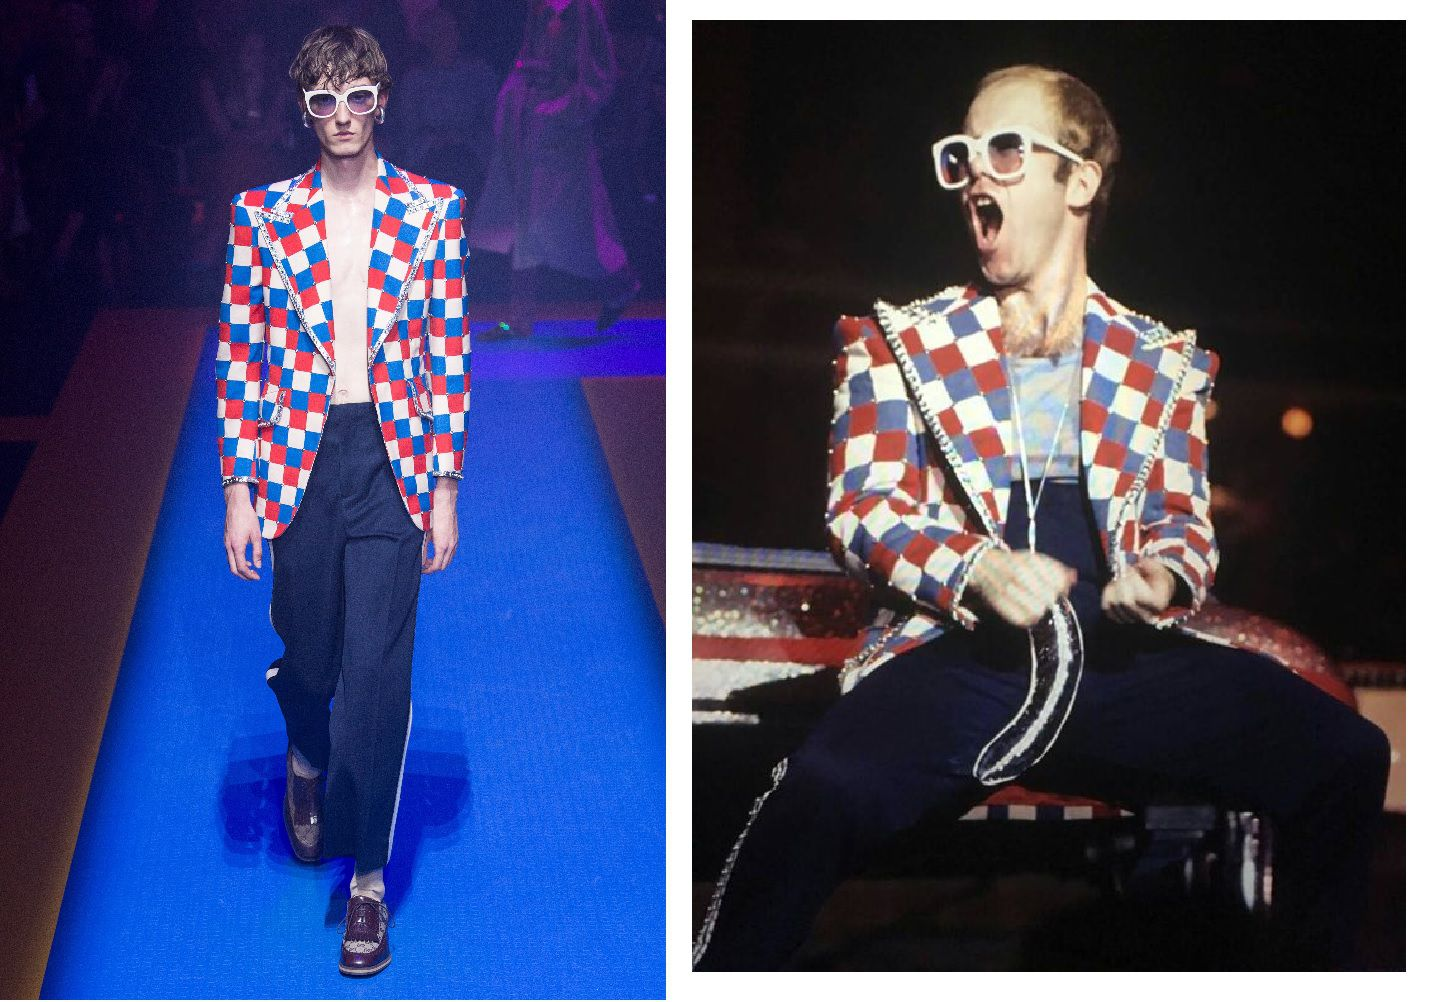 c18afec3b Michele is a designer with a clear love of seventies nostalgia, it was only  a matter of time he would reference Elton John, a pop star synonymous of  this ...